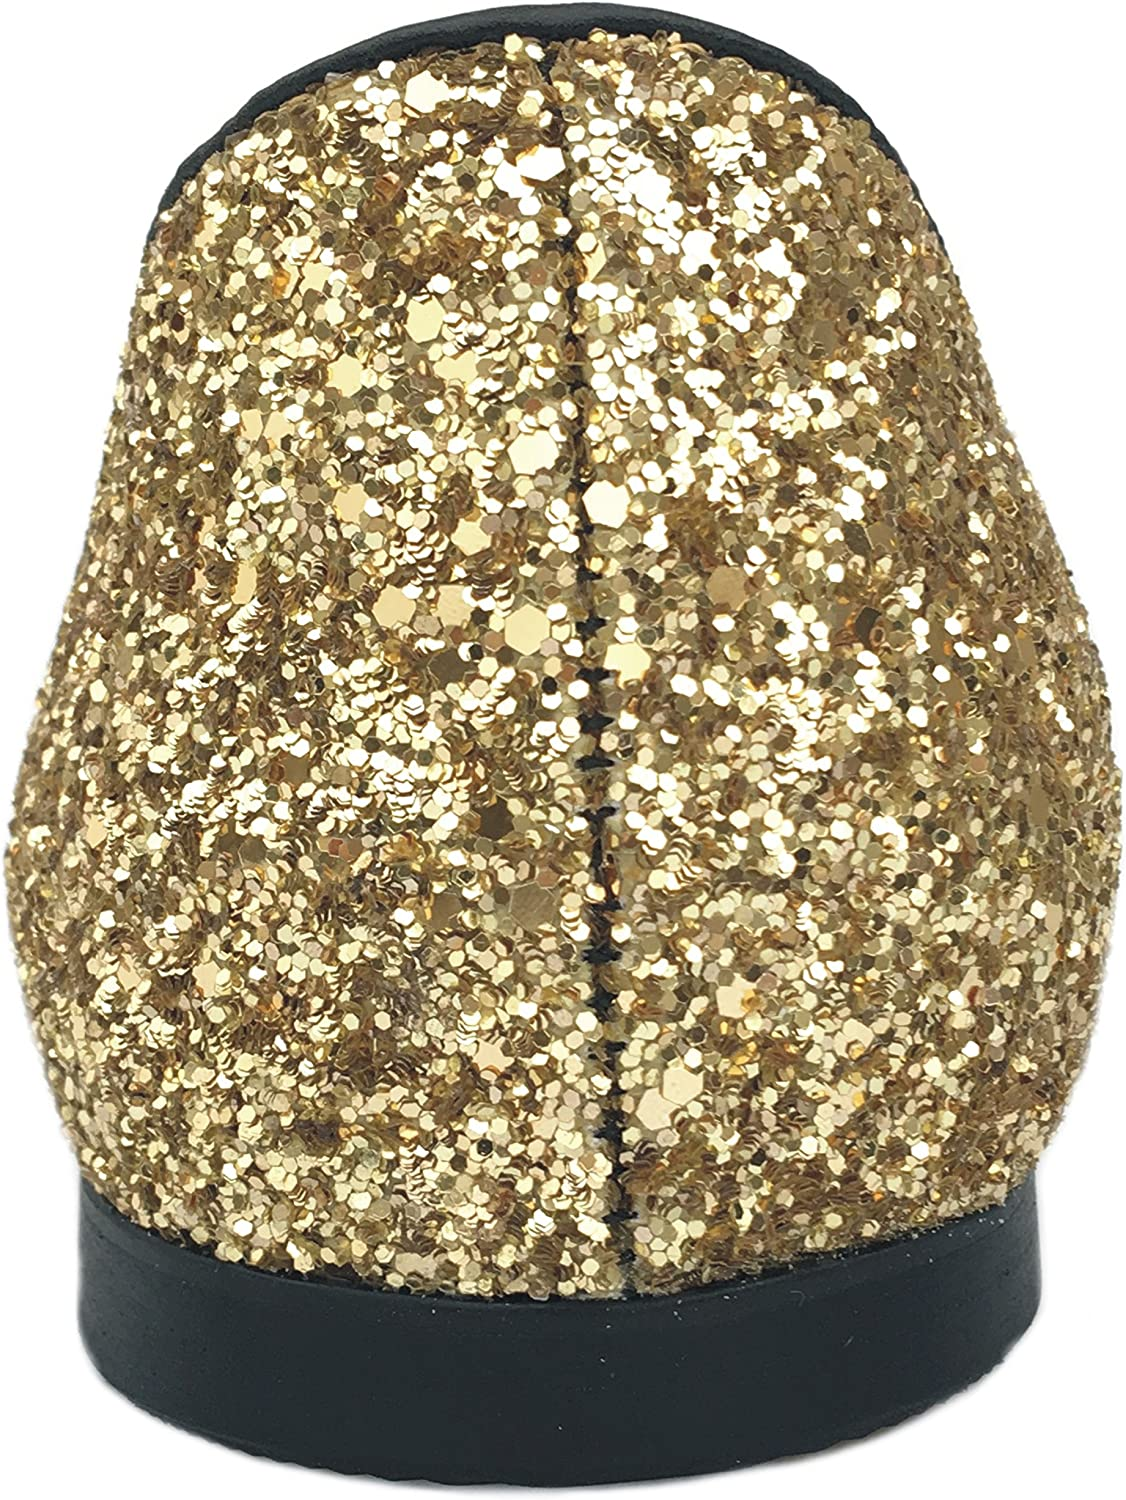 Justar Mens Metallic Glitter Sequins Loafers Gold Dress Shoes Tuxedo Slip On Smoking Slippers Silver Blue